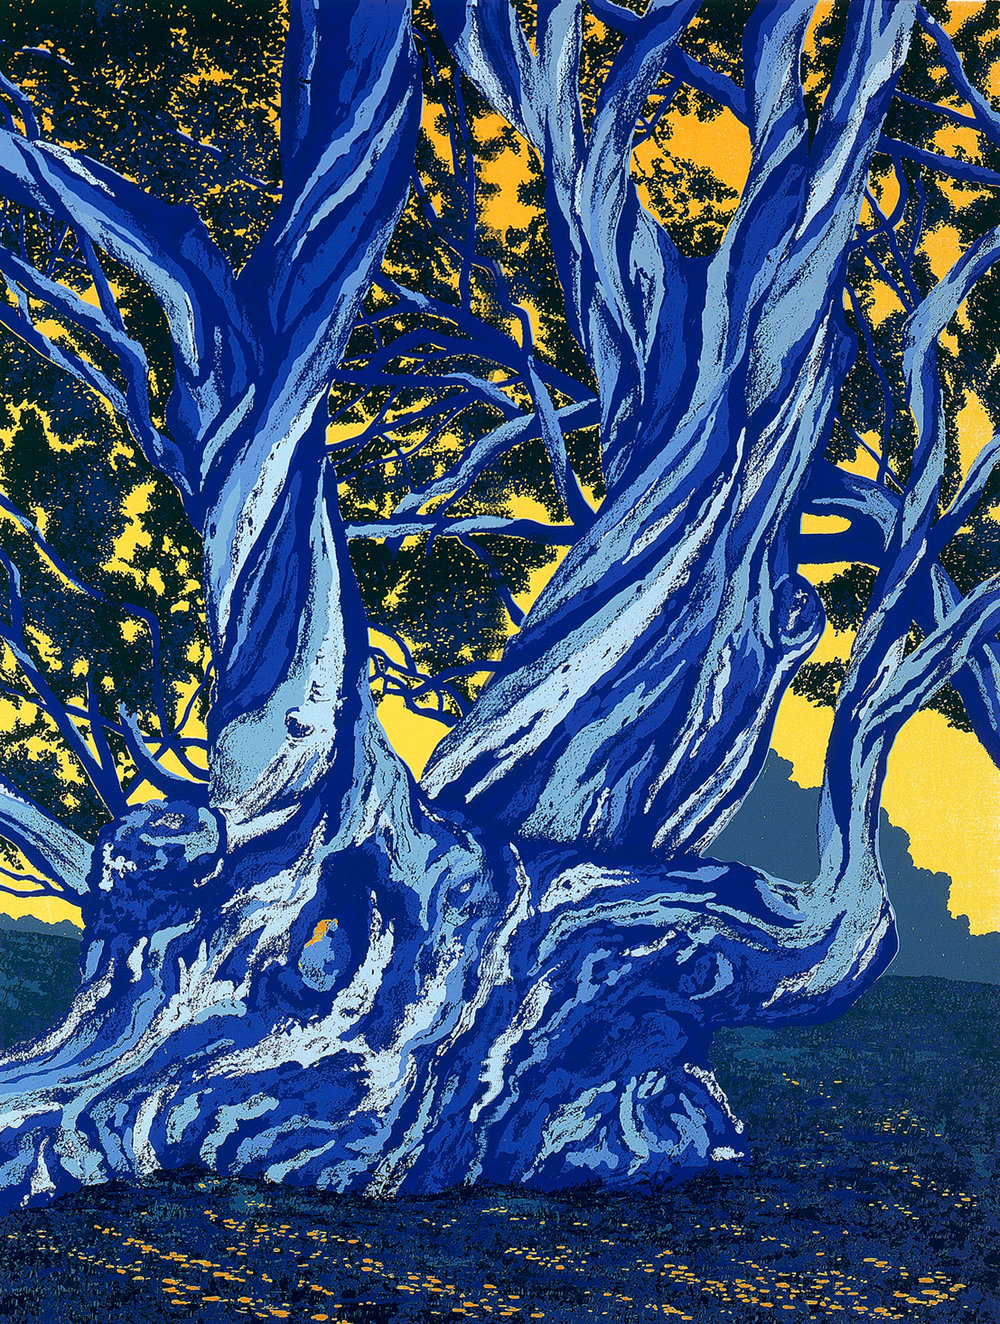 "187   Blue Gums - state 3   24"" x 18"" – 610 x 460mm 20 colors 10 edition / 4 available $450"